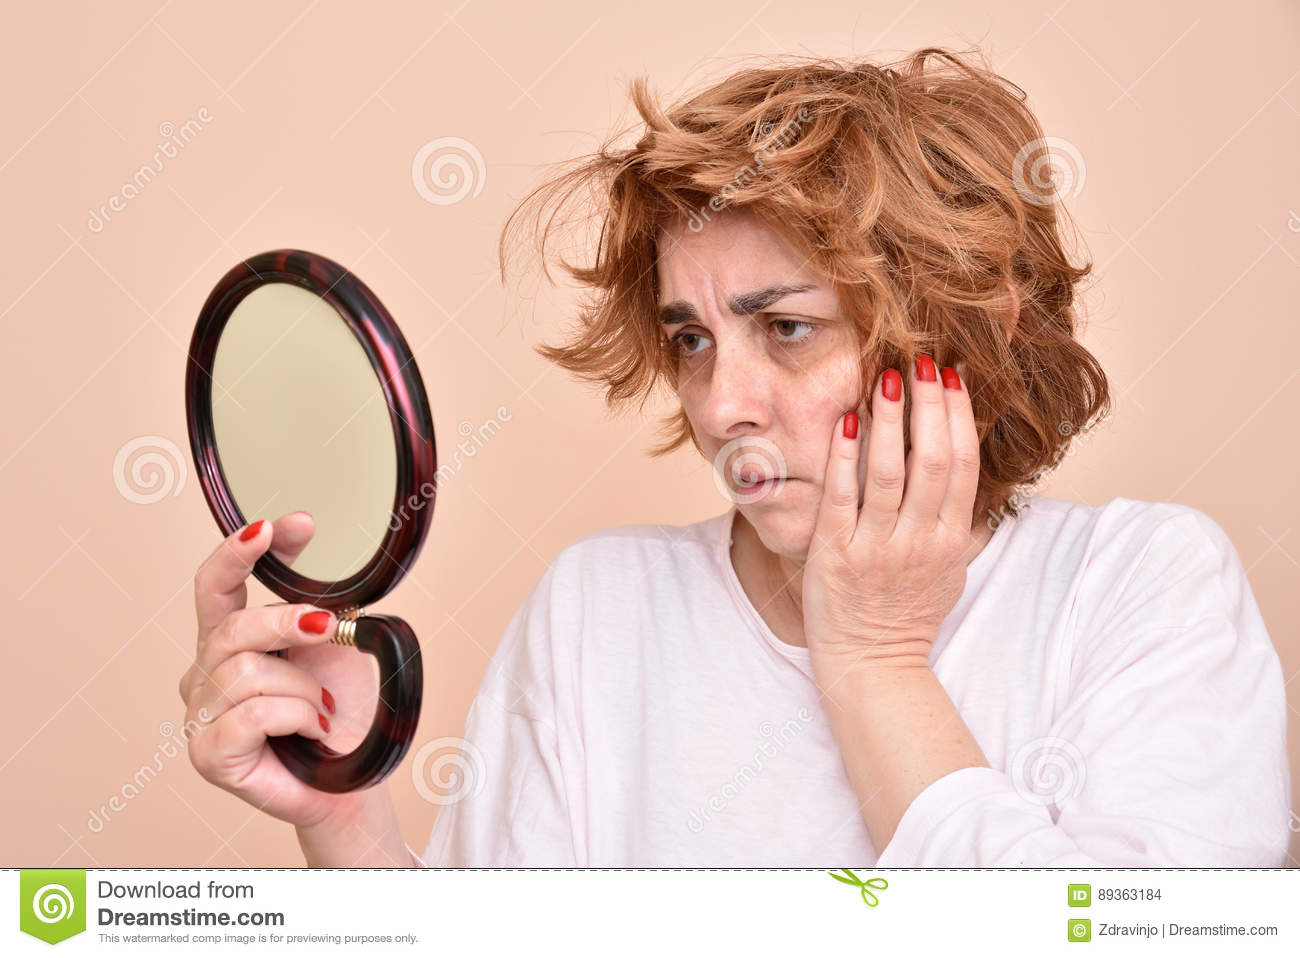 Woman looking at the mirror